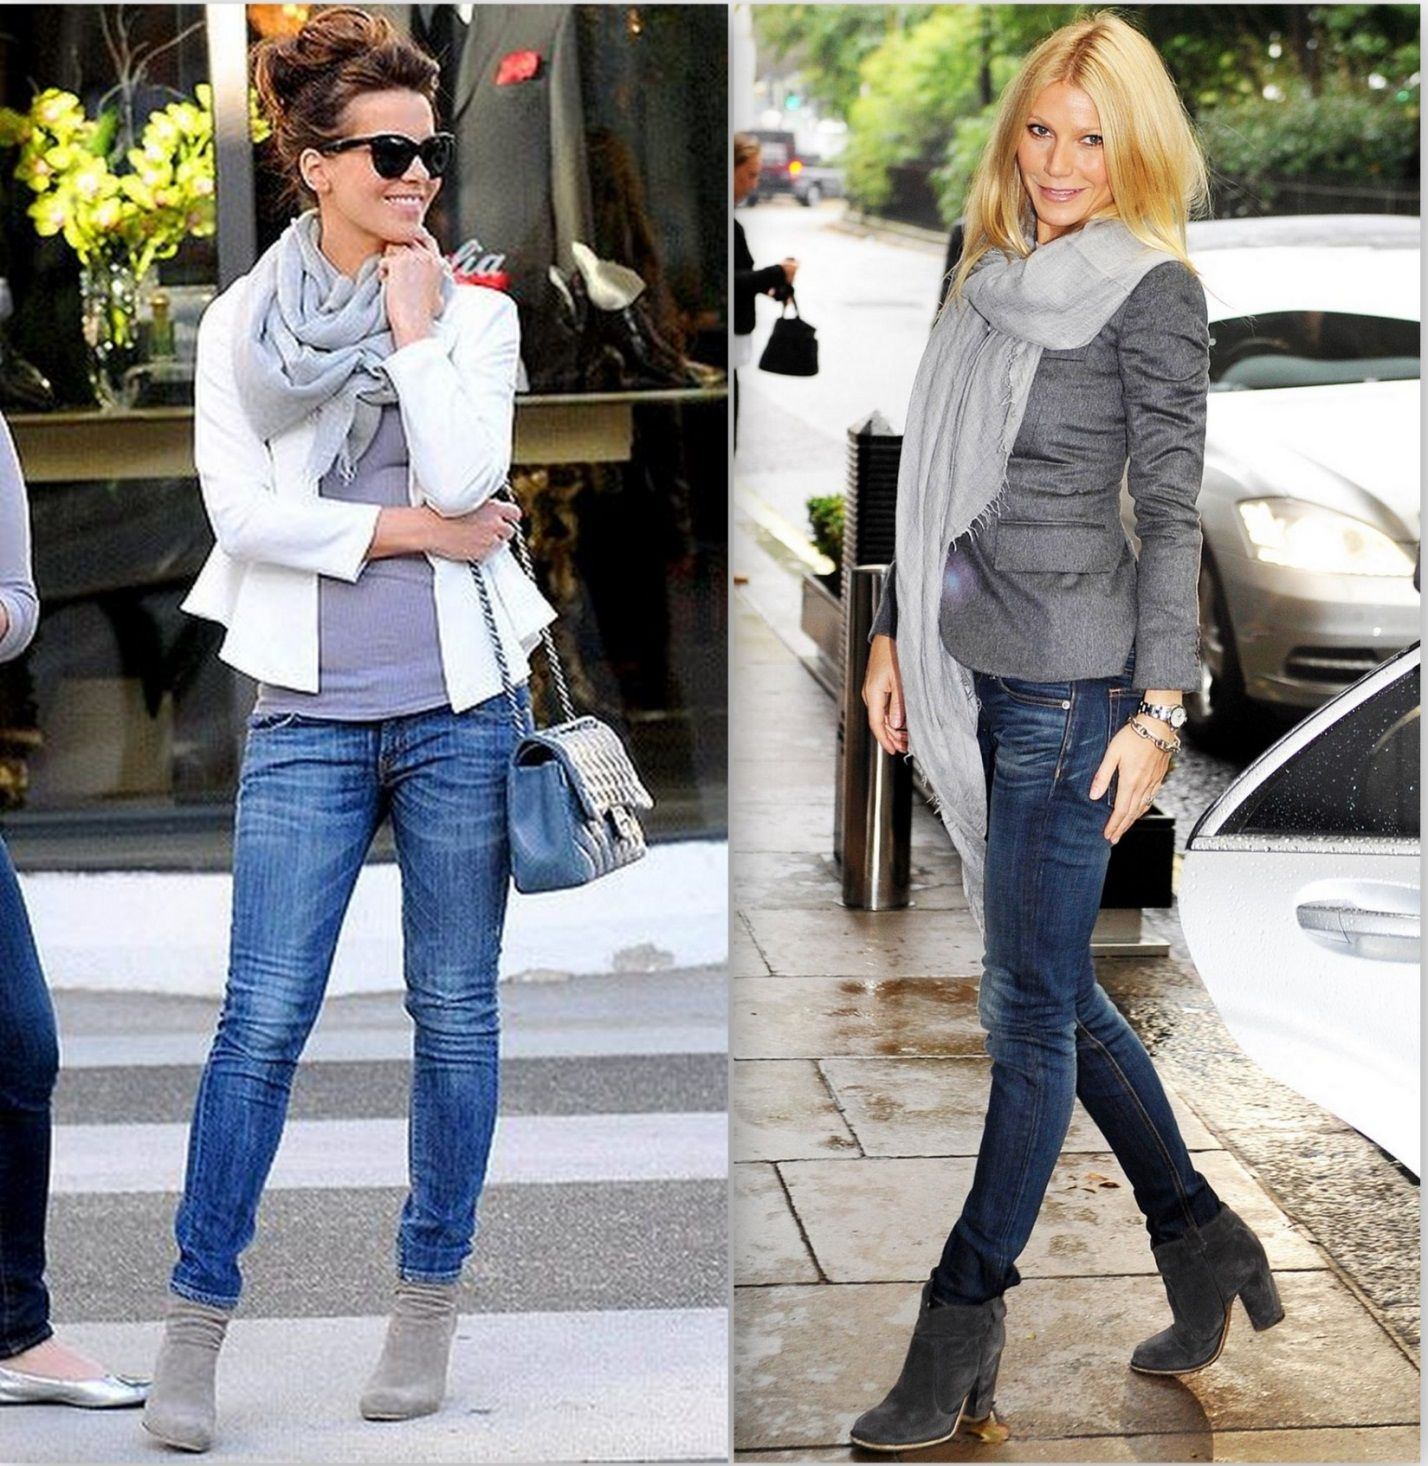 Fall fashion: blazers and booties | Style | Pinterest | Fall ...